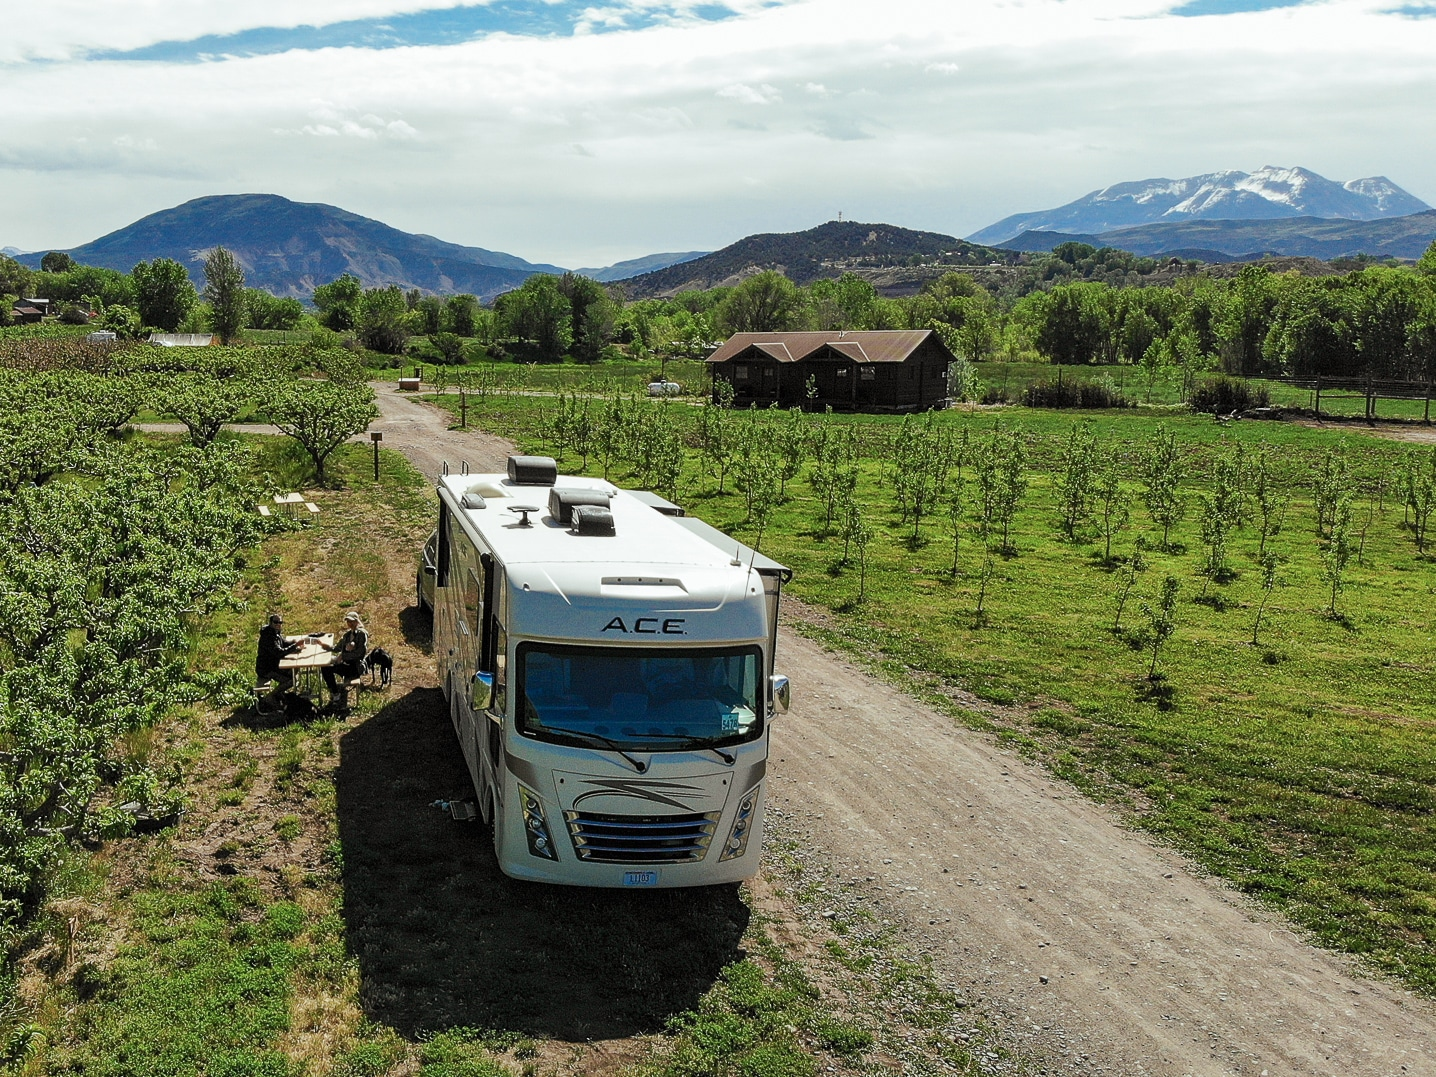 An unexpected adventure in Paonia, CO. Wineries and camping in an orchard!